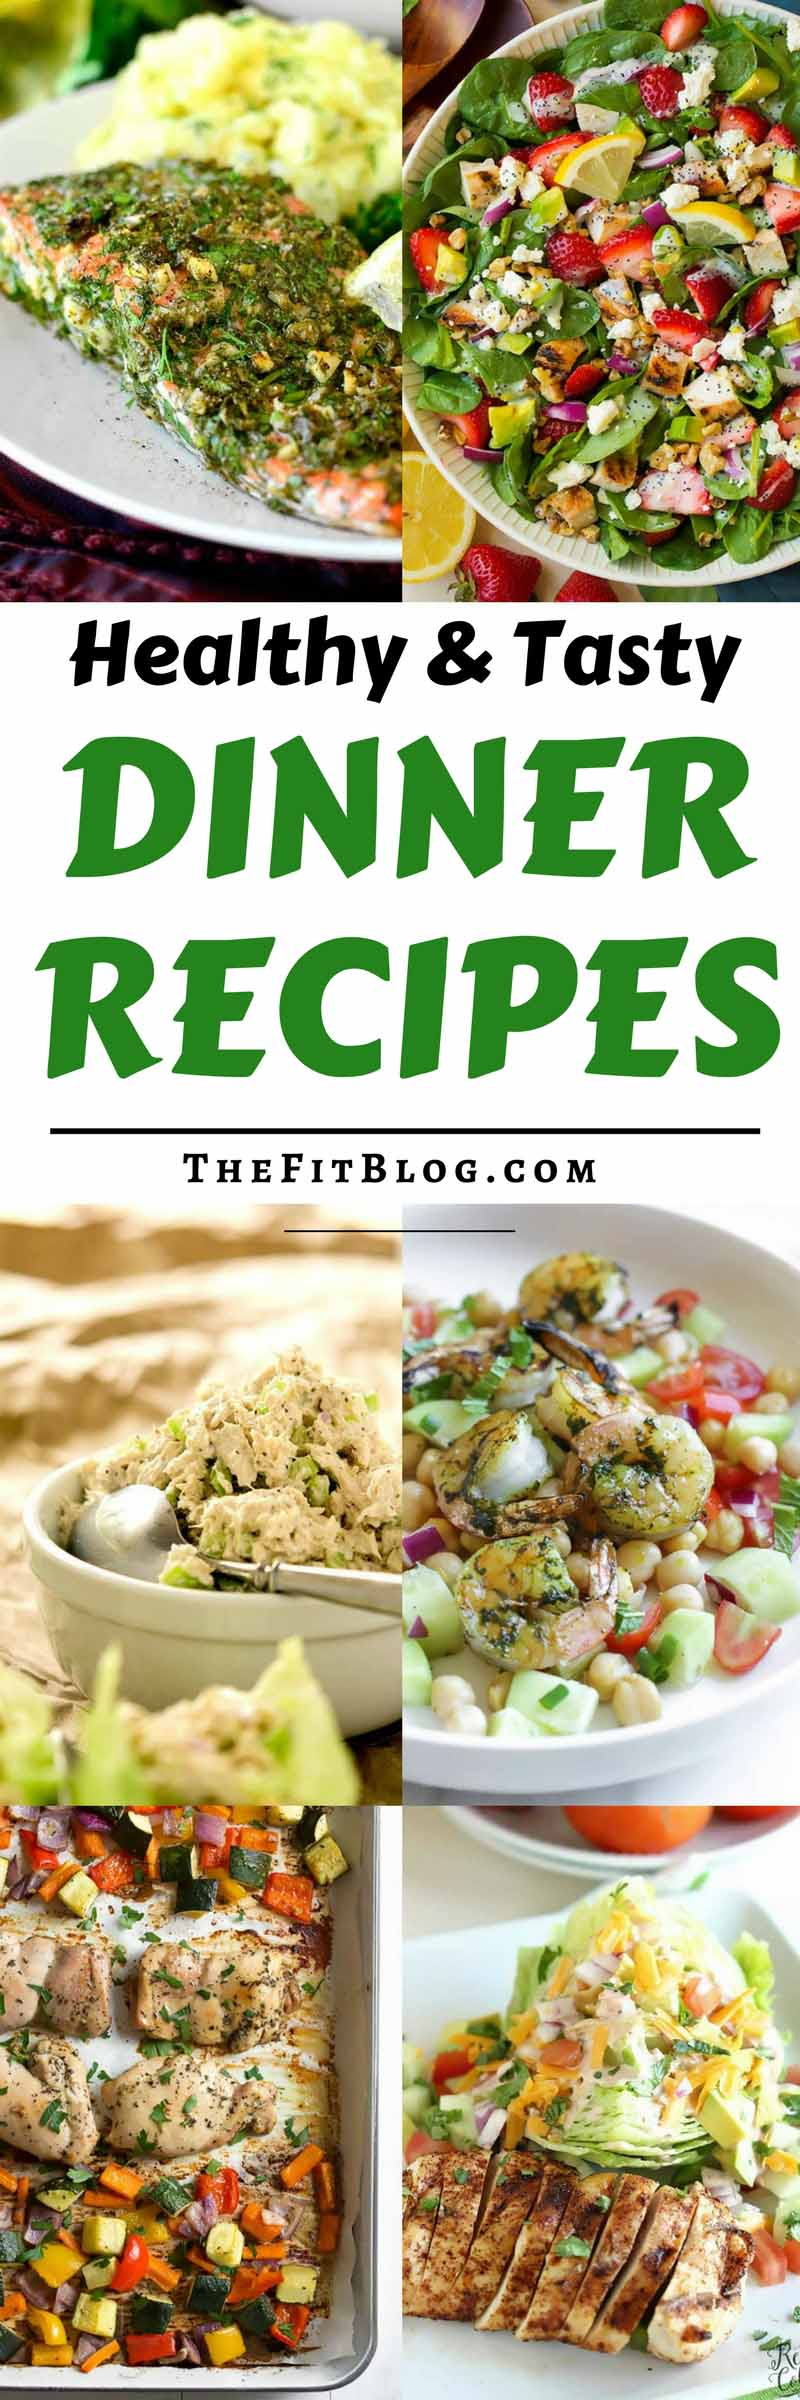 10 super tasty, easy to make, low-carb dinner recipes for diabetics. All of them under 20 grams of carbs. Healthy and diabetes-friendly recipes should never be boring or difficult to cook! Chicken recipes, pork recipes, vegetarian recipes. #healthyeating #healthyrecipes #diabetesdiet #diabetesrecipe #diabeticdiet #diabeticfood #diabeticrecipe #diabeticfriendly #lowcarb #lowcarbdiet #lowcarbrecipes